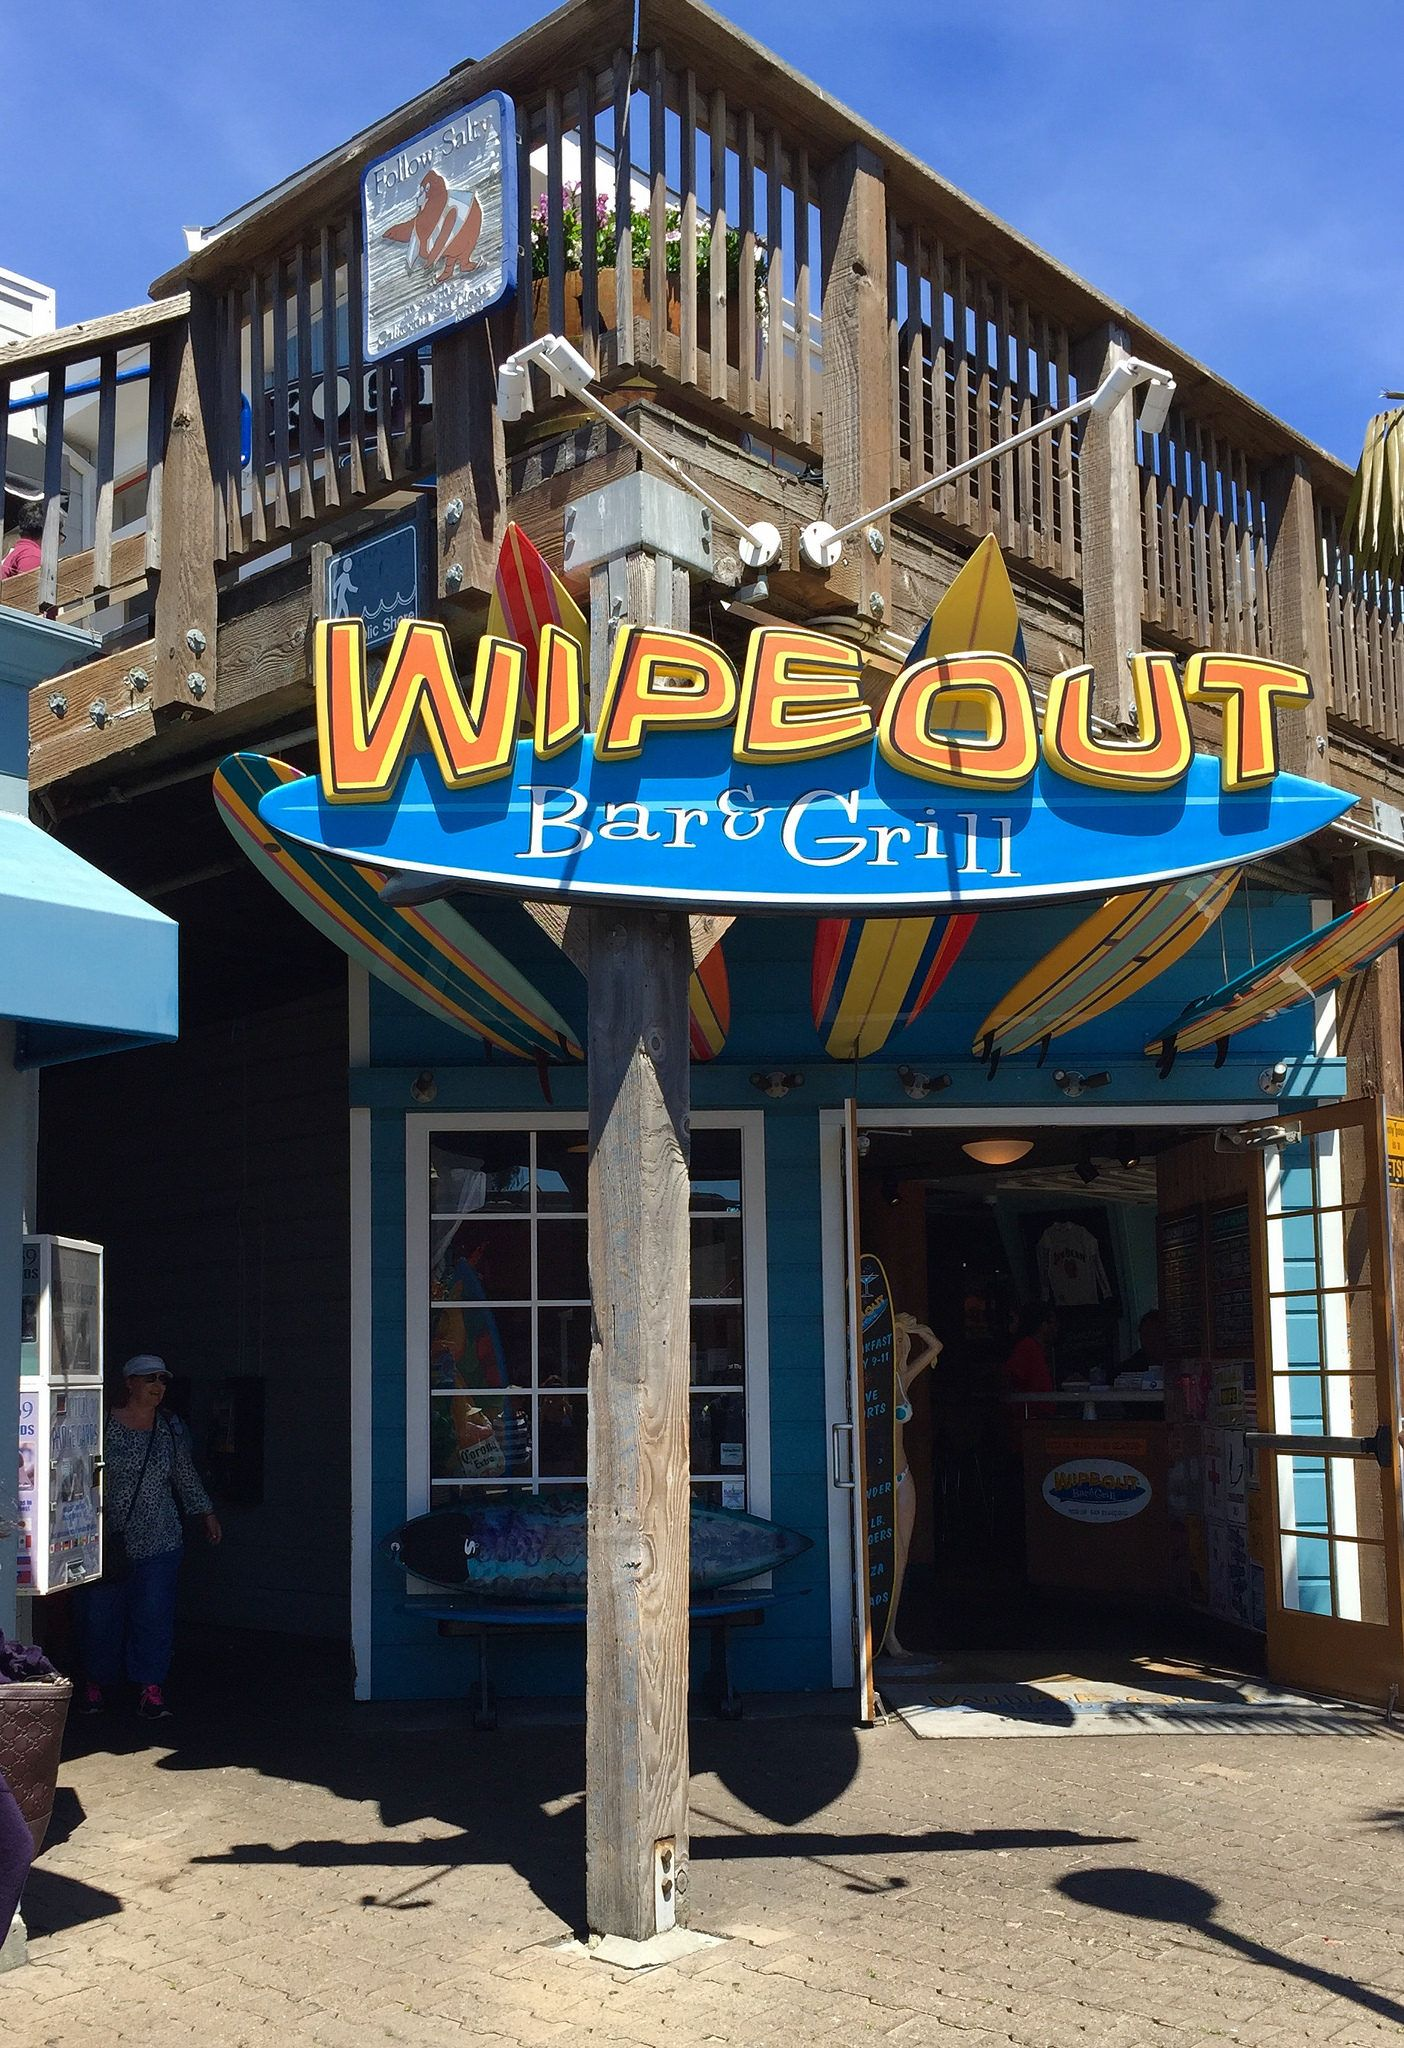 Wipe Out Bar Grill Pier 39 California Surf Surfing Pier